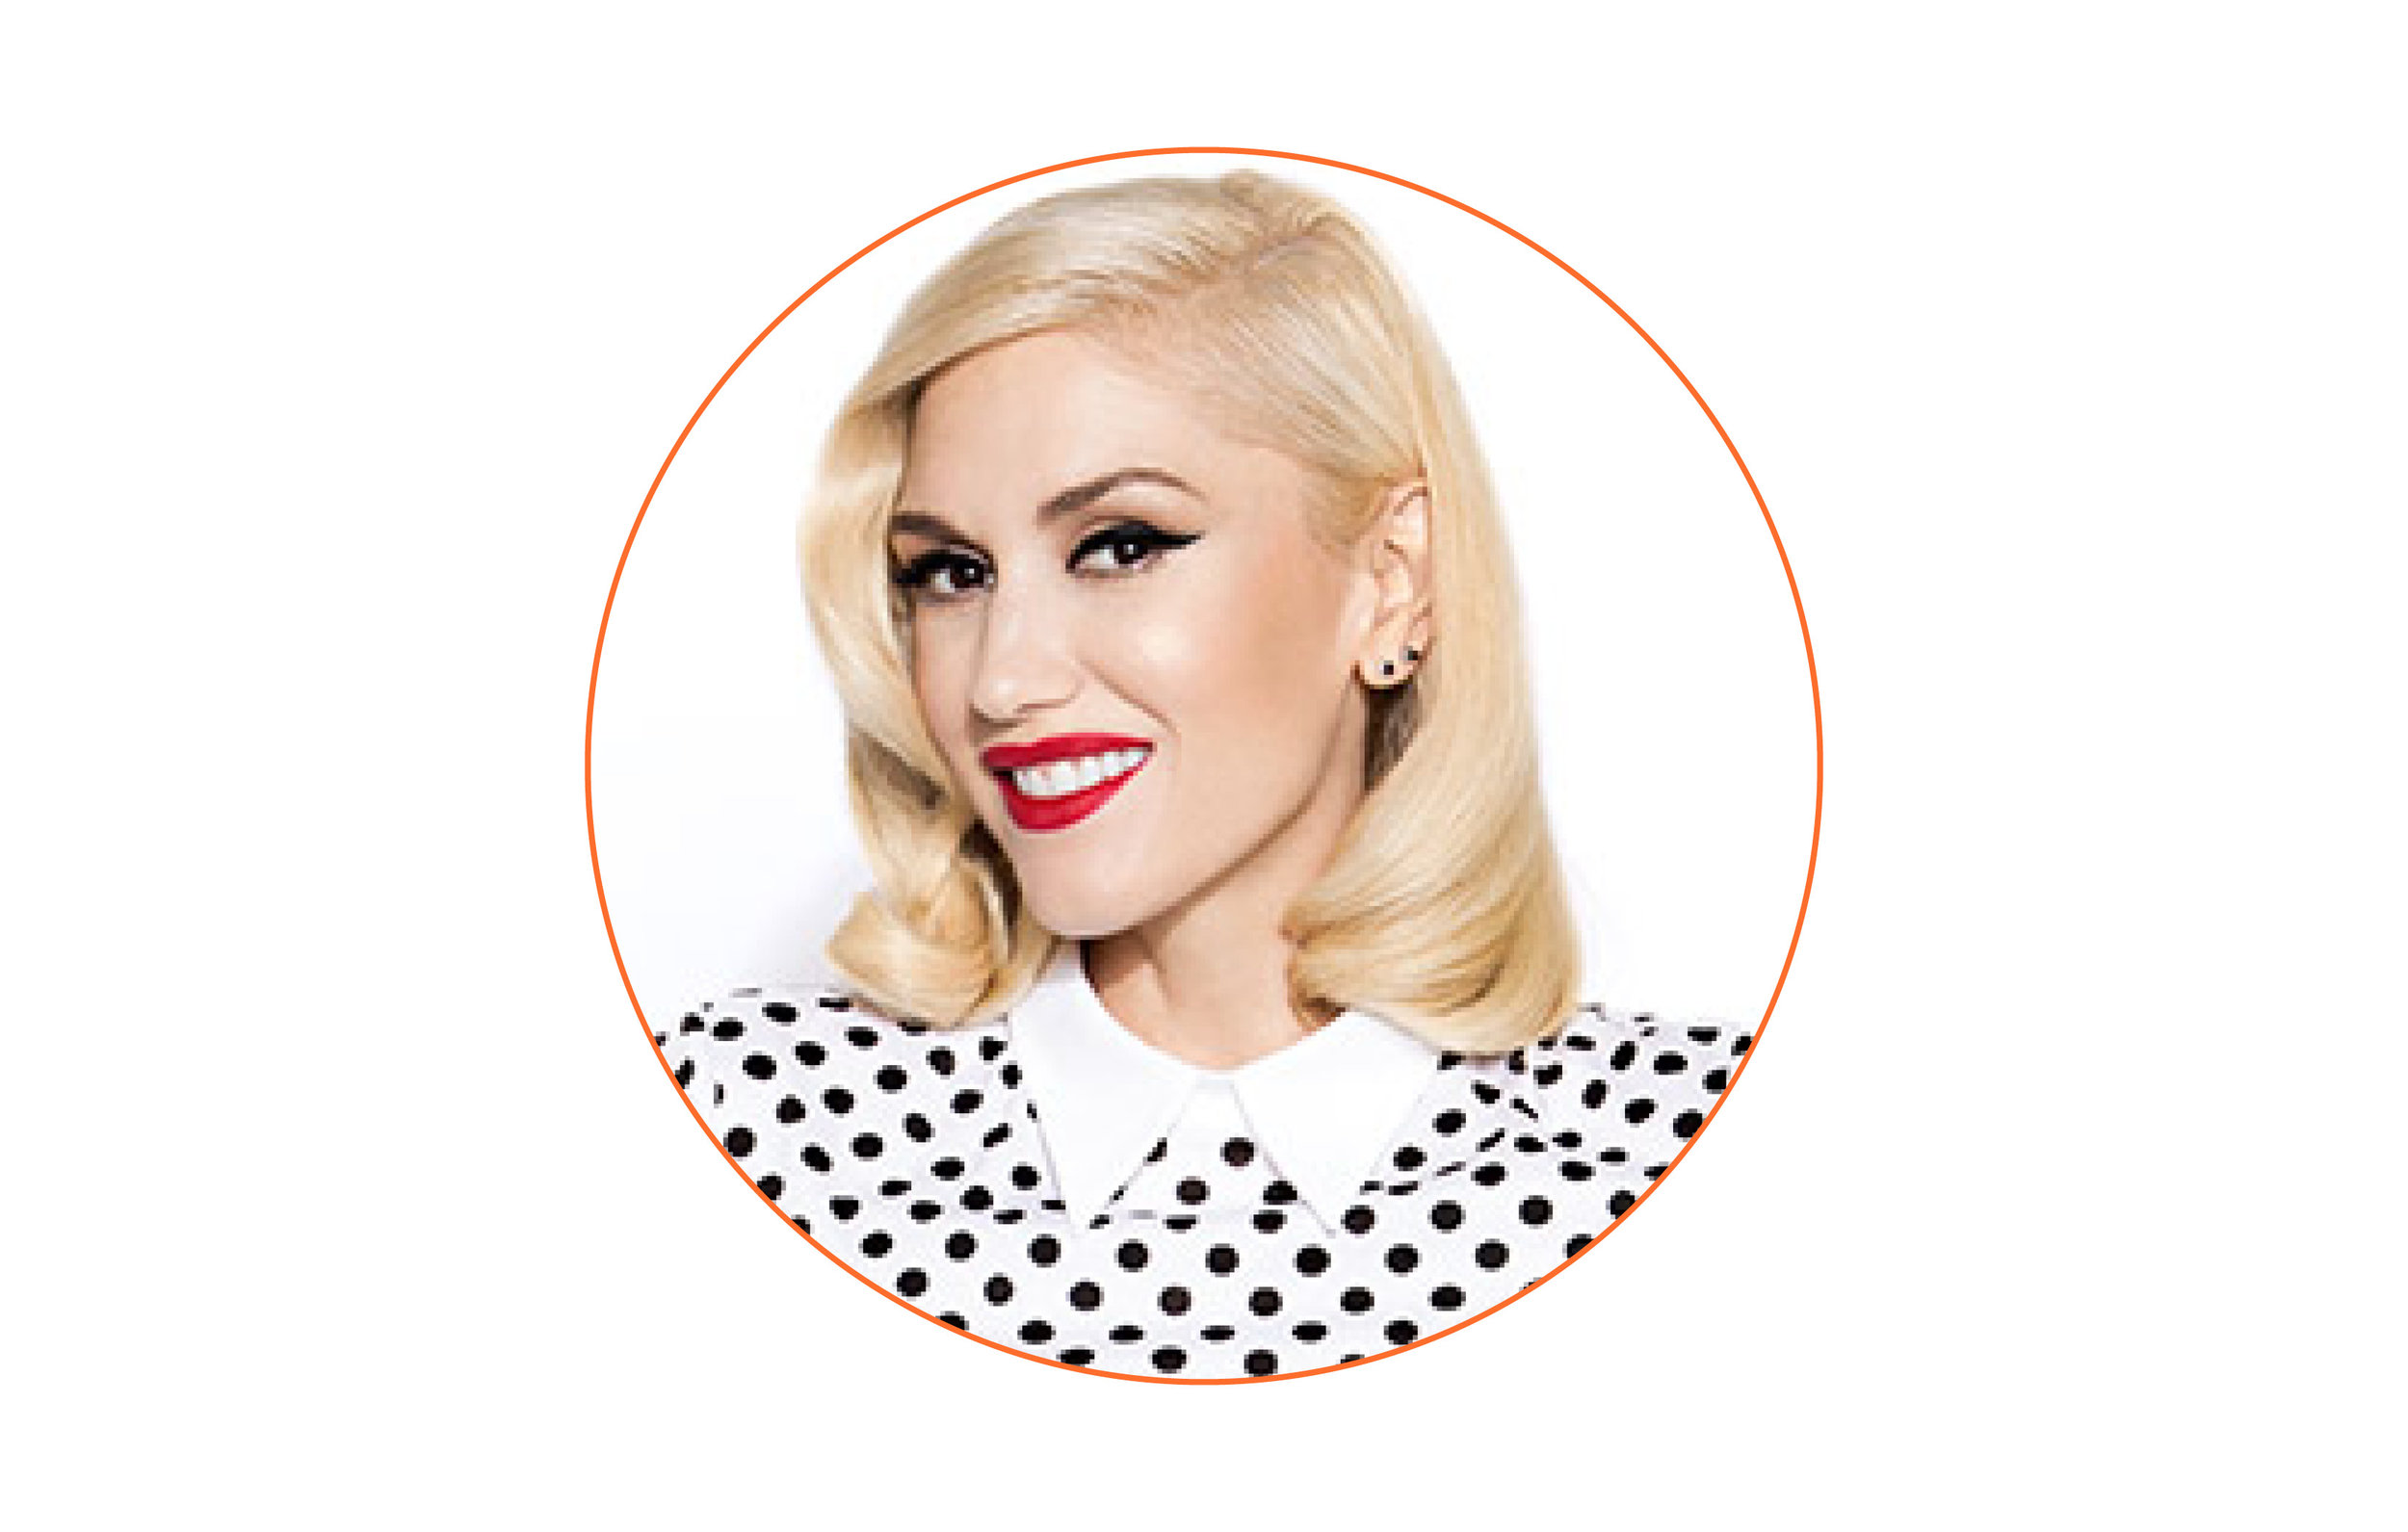 Brush with celebrity? - I won backstage passes to meet Gwen Stefani and almost got kicked out for taking too many photos. I also got on an elevator once with Adam Duritz, lead singer for Counting Crows.